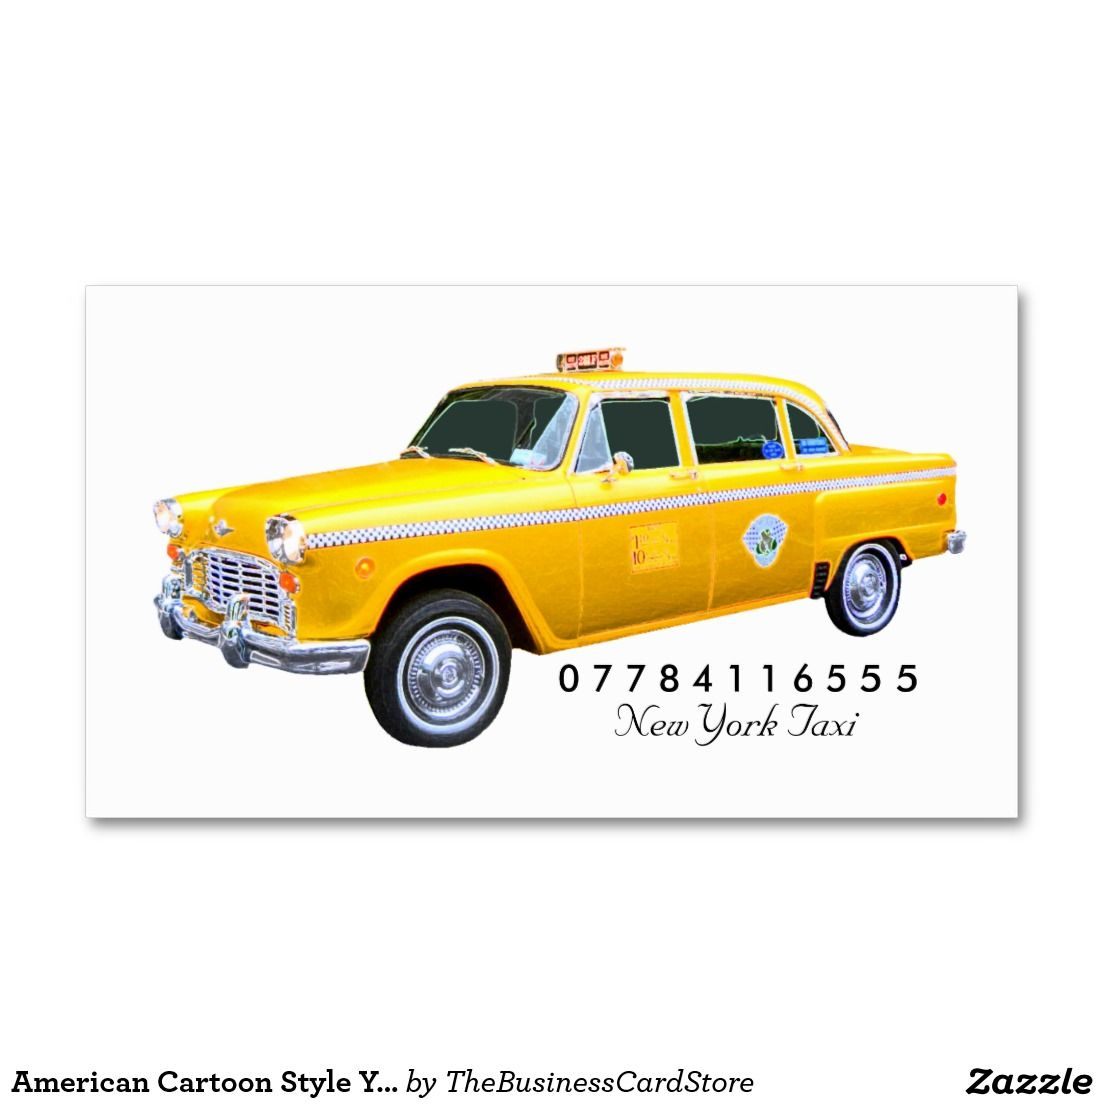 American Cartoon Style Yellow Taxi Cab Business Card | Taxi and Vehicle